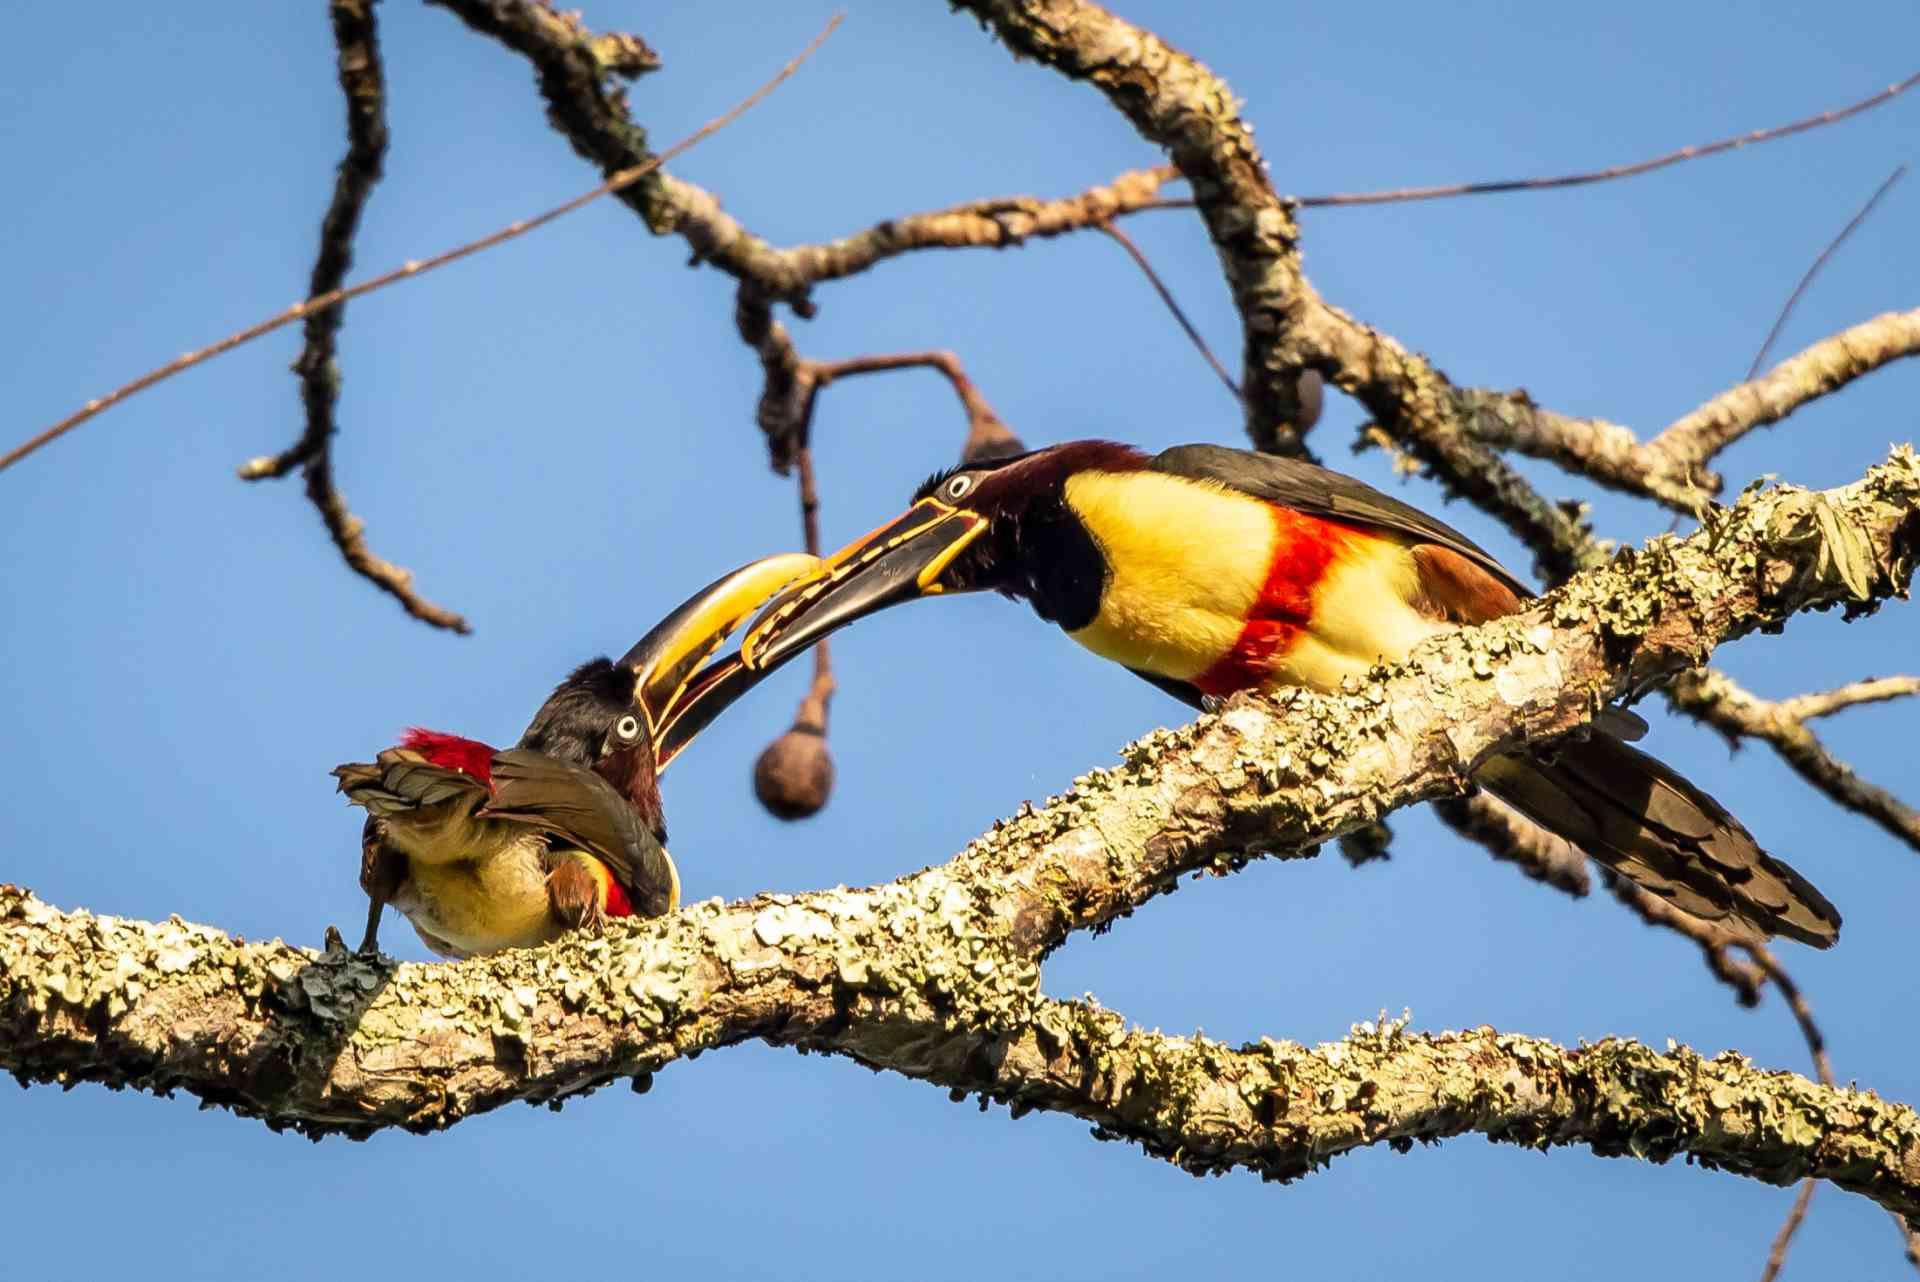 Congratulations to our January 2019 winner Kevin for capturing this great shot of a 'Toucan Tango' near Iguazu Falls in Brazil.